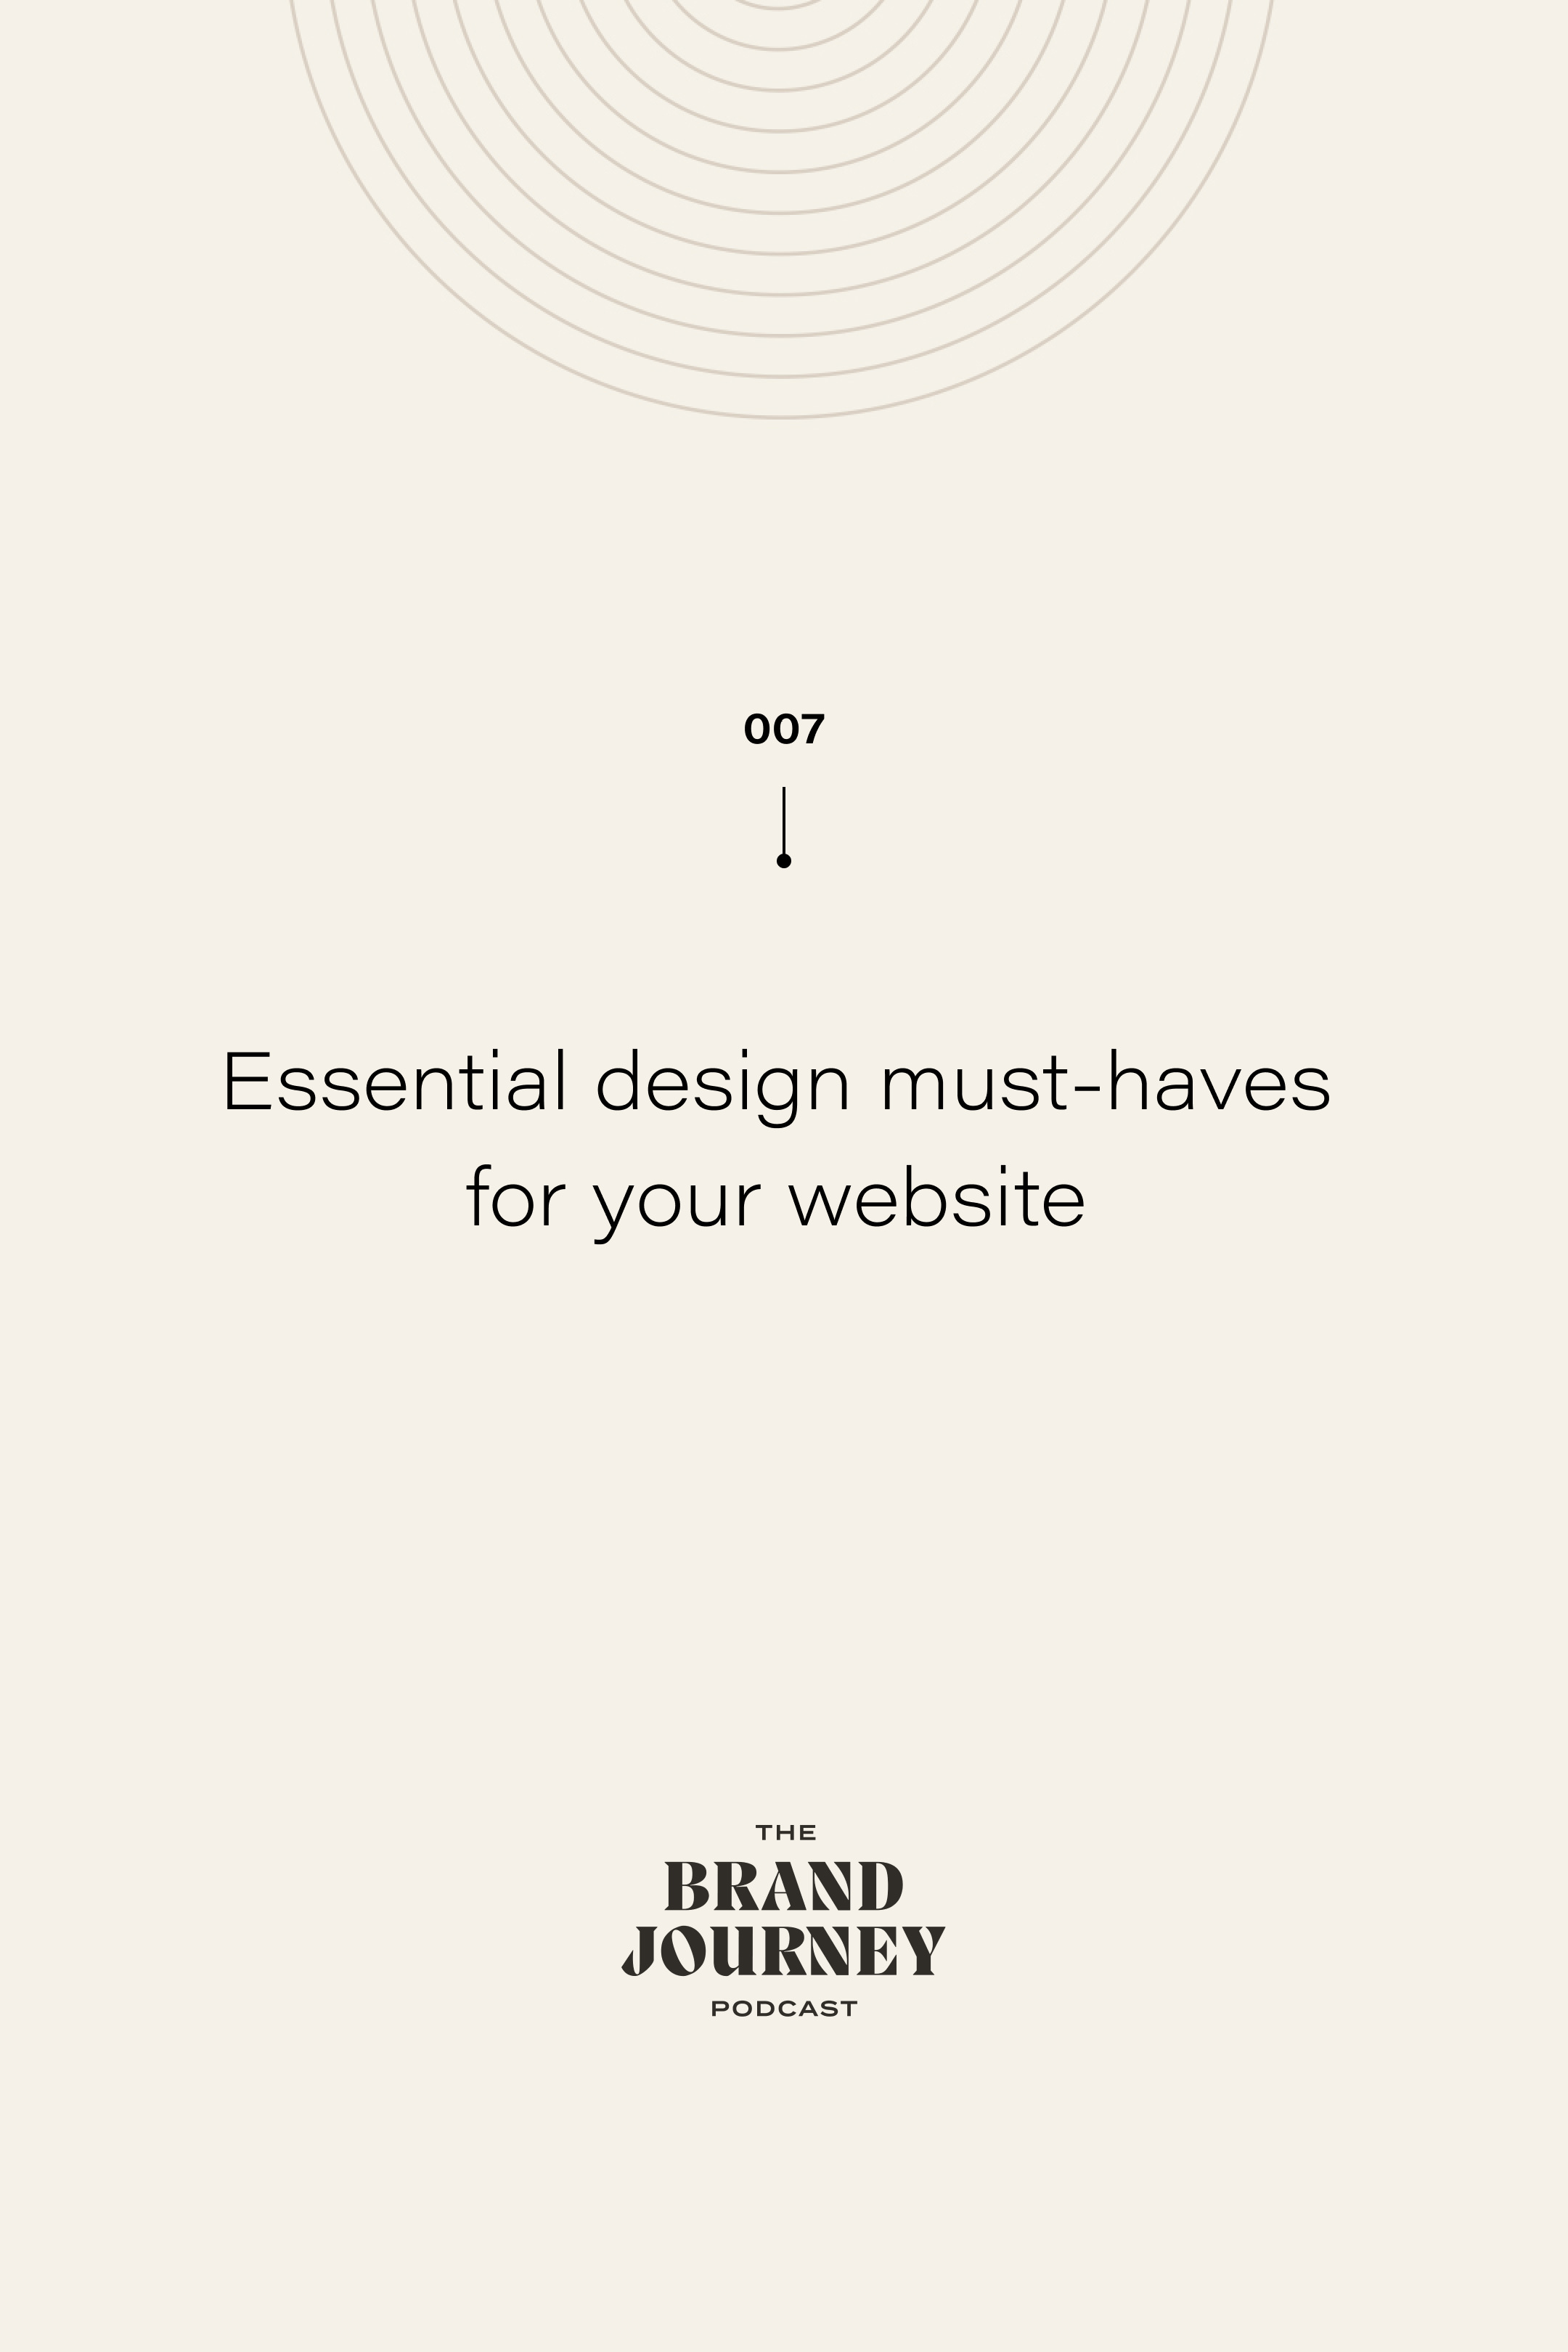 Essential design must-haves for your website